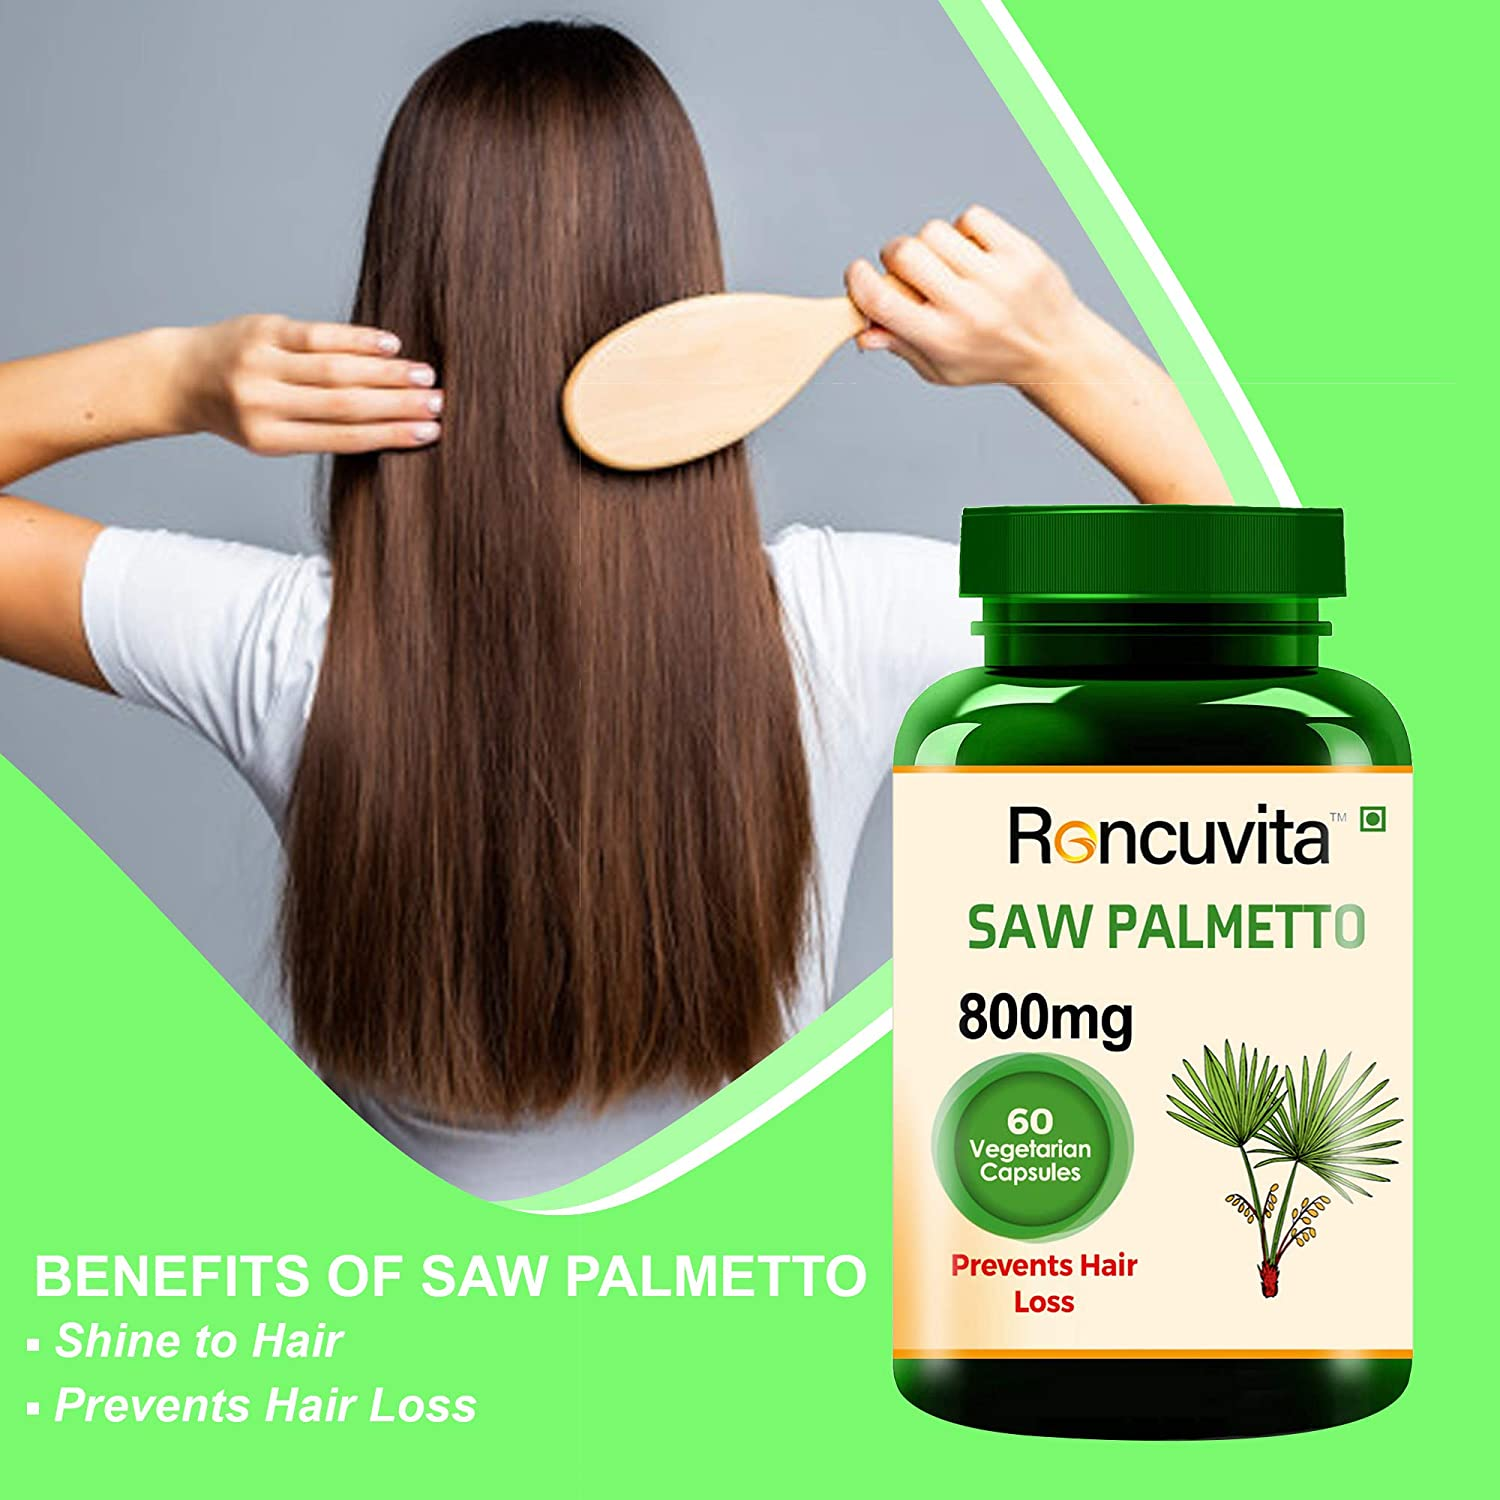 3 Health Benefits Saw Palmetto for Hair